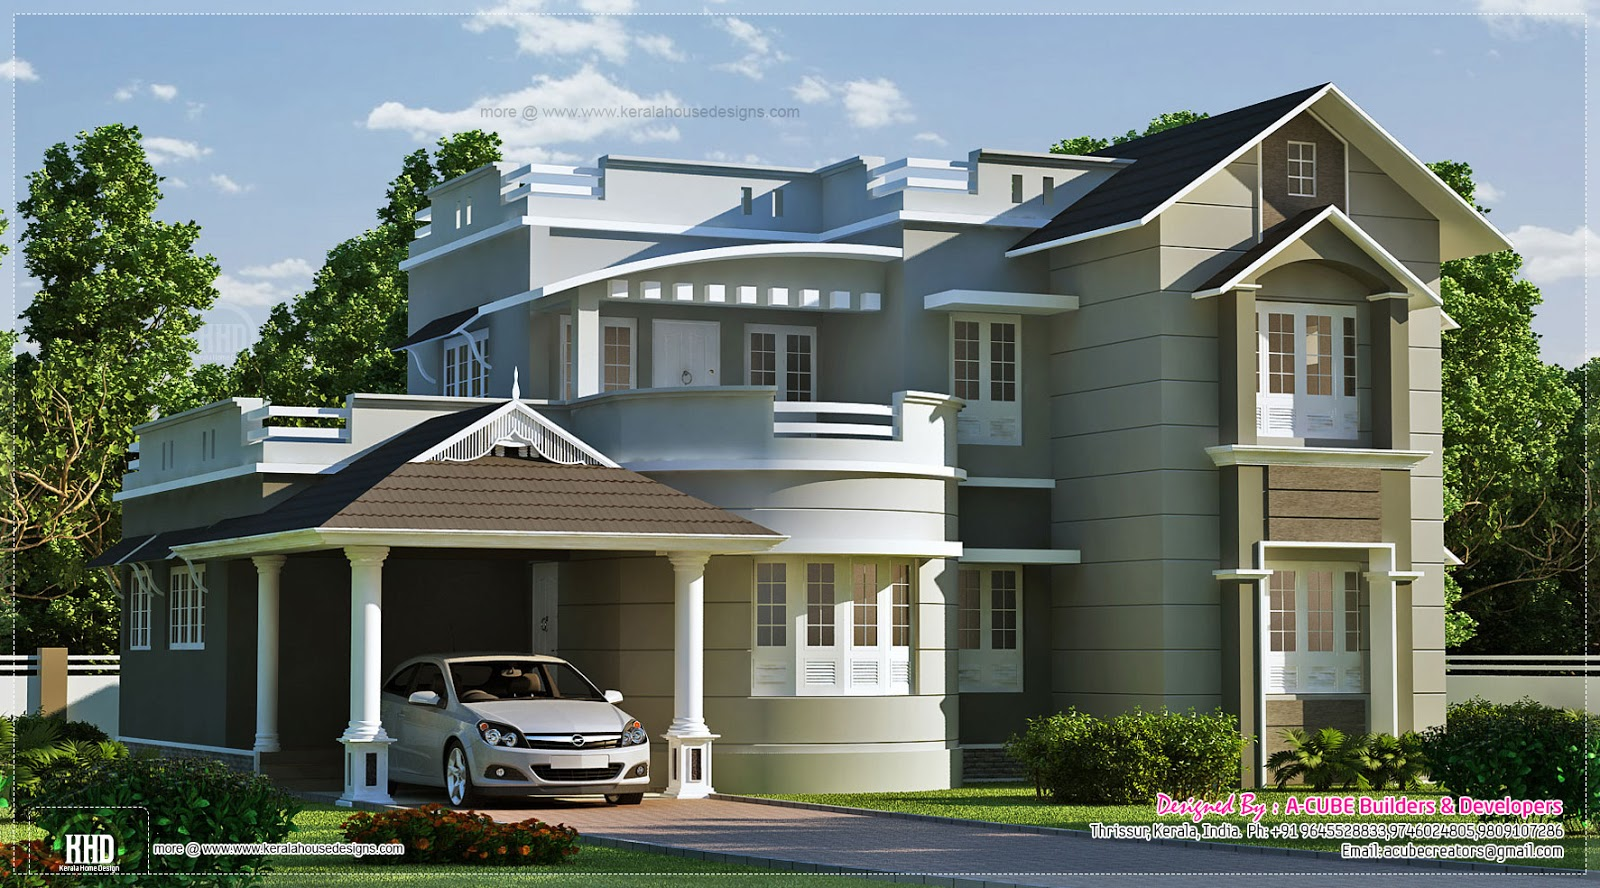 New style home exterior in 1800 sq.feet